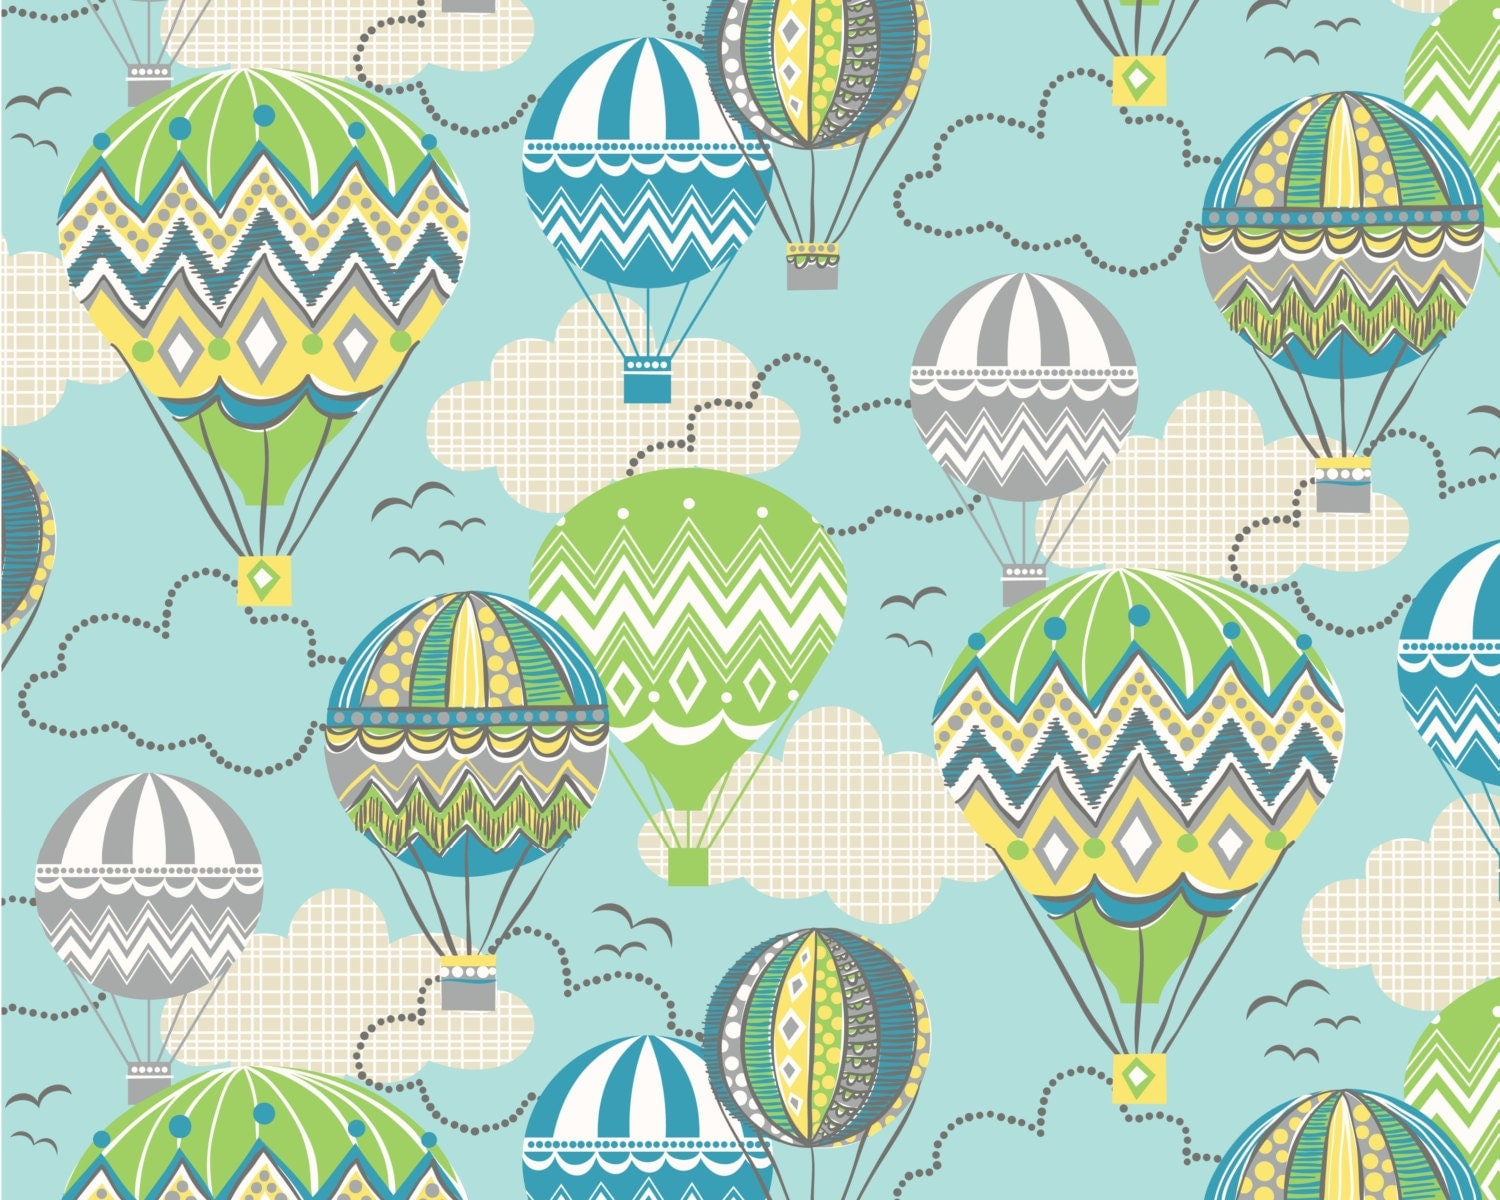 Blown away balloon ride blue cotton print fabric from blend for Airplane print cotton fabric